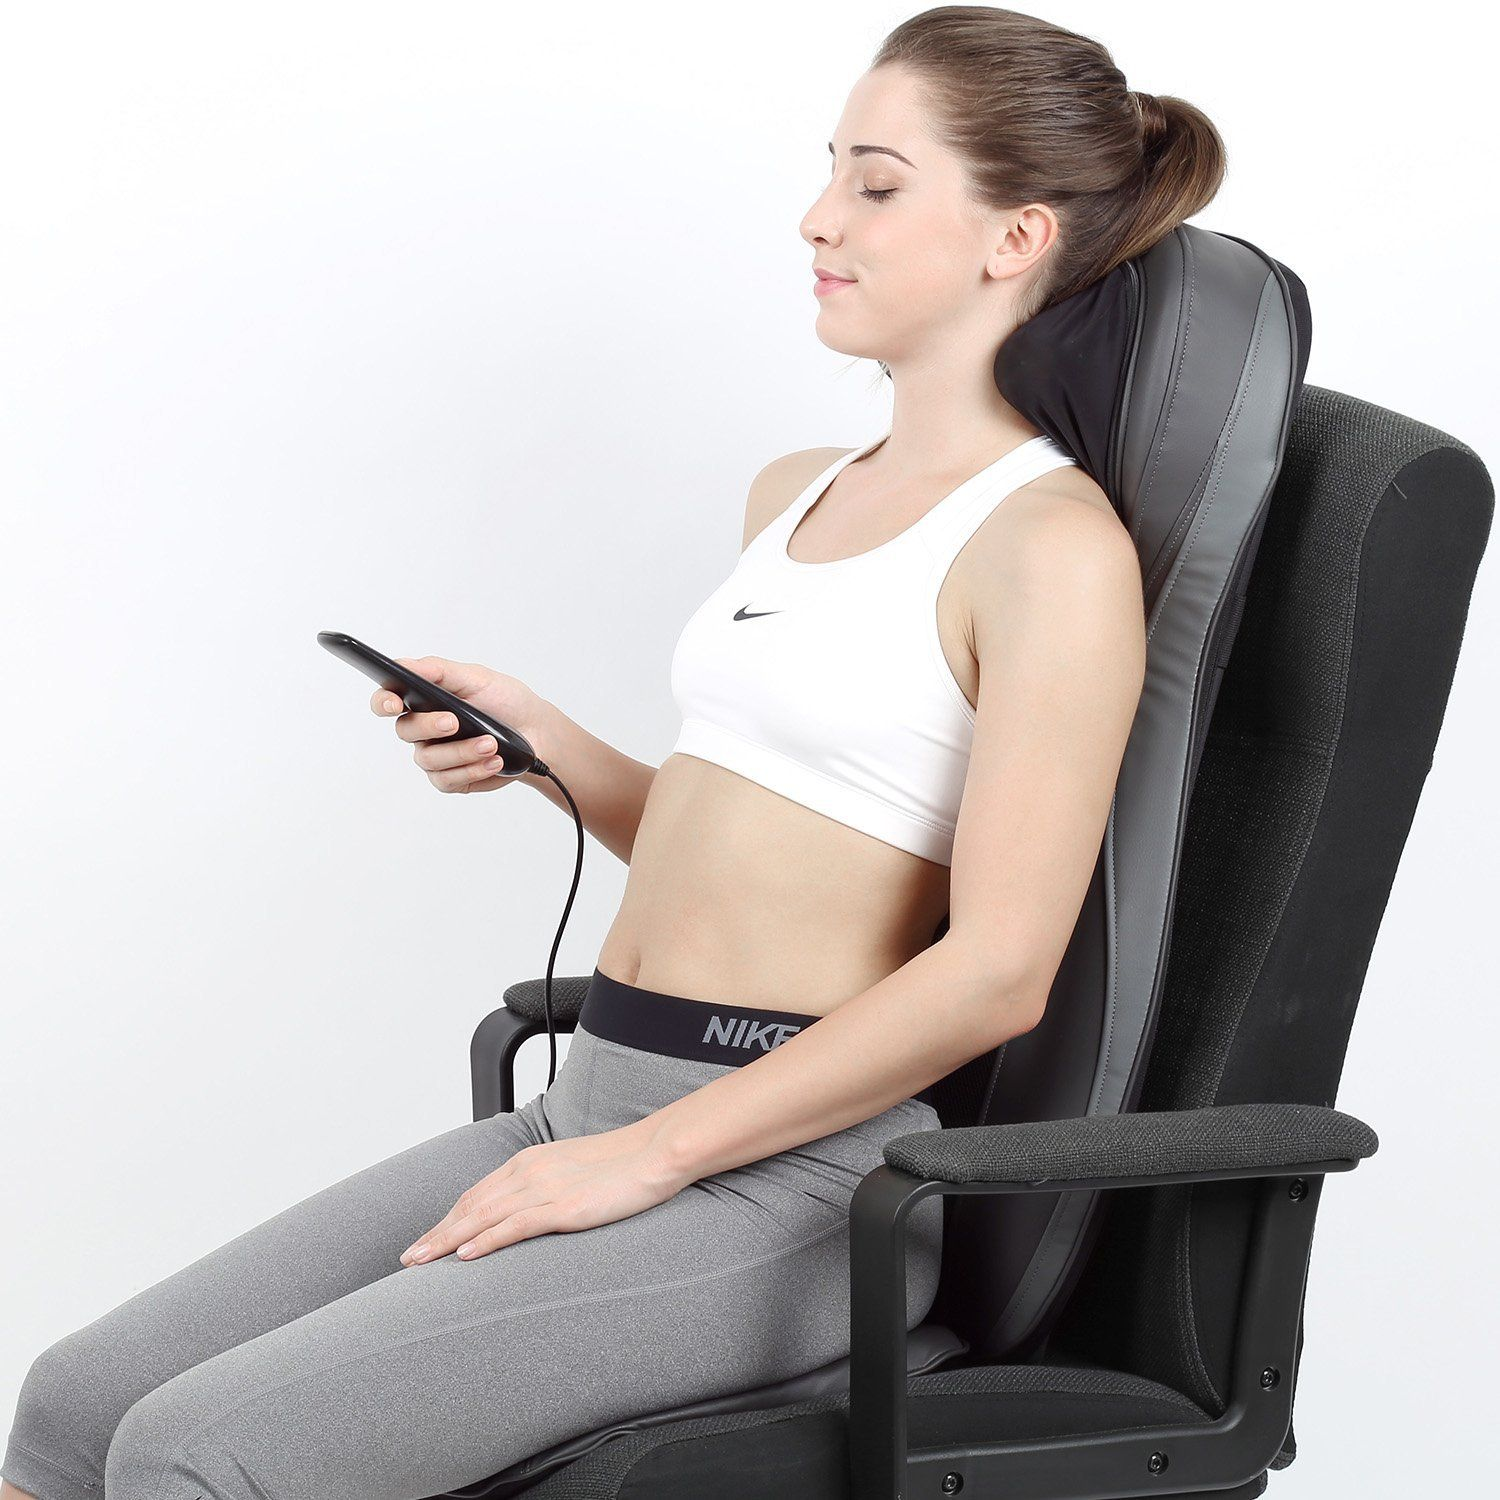 Amazon Com Shiatsu Back Massage Seat Cushion With Heat 2d Or 3d Finger Pressure Shiatsu Full Back Massage Chair Pads Outdoor Chaise Lounge Chair Massage Chair